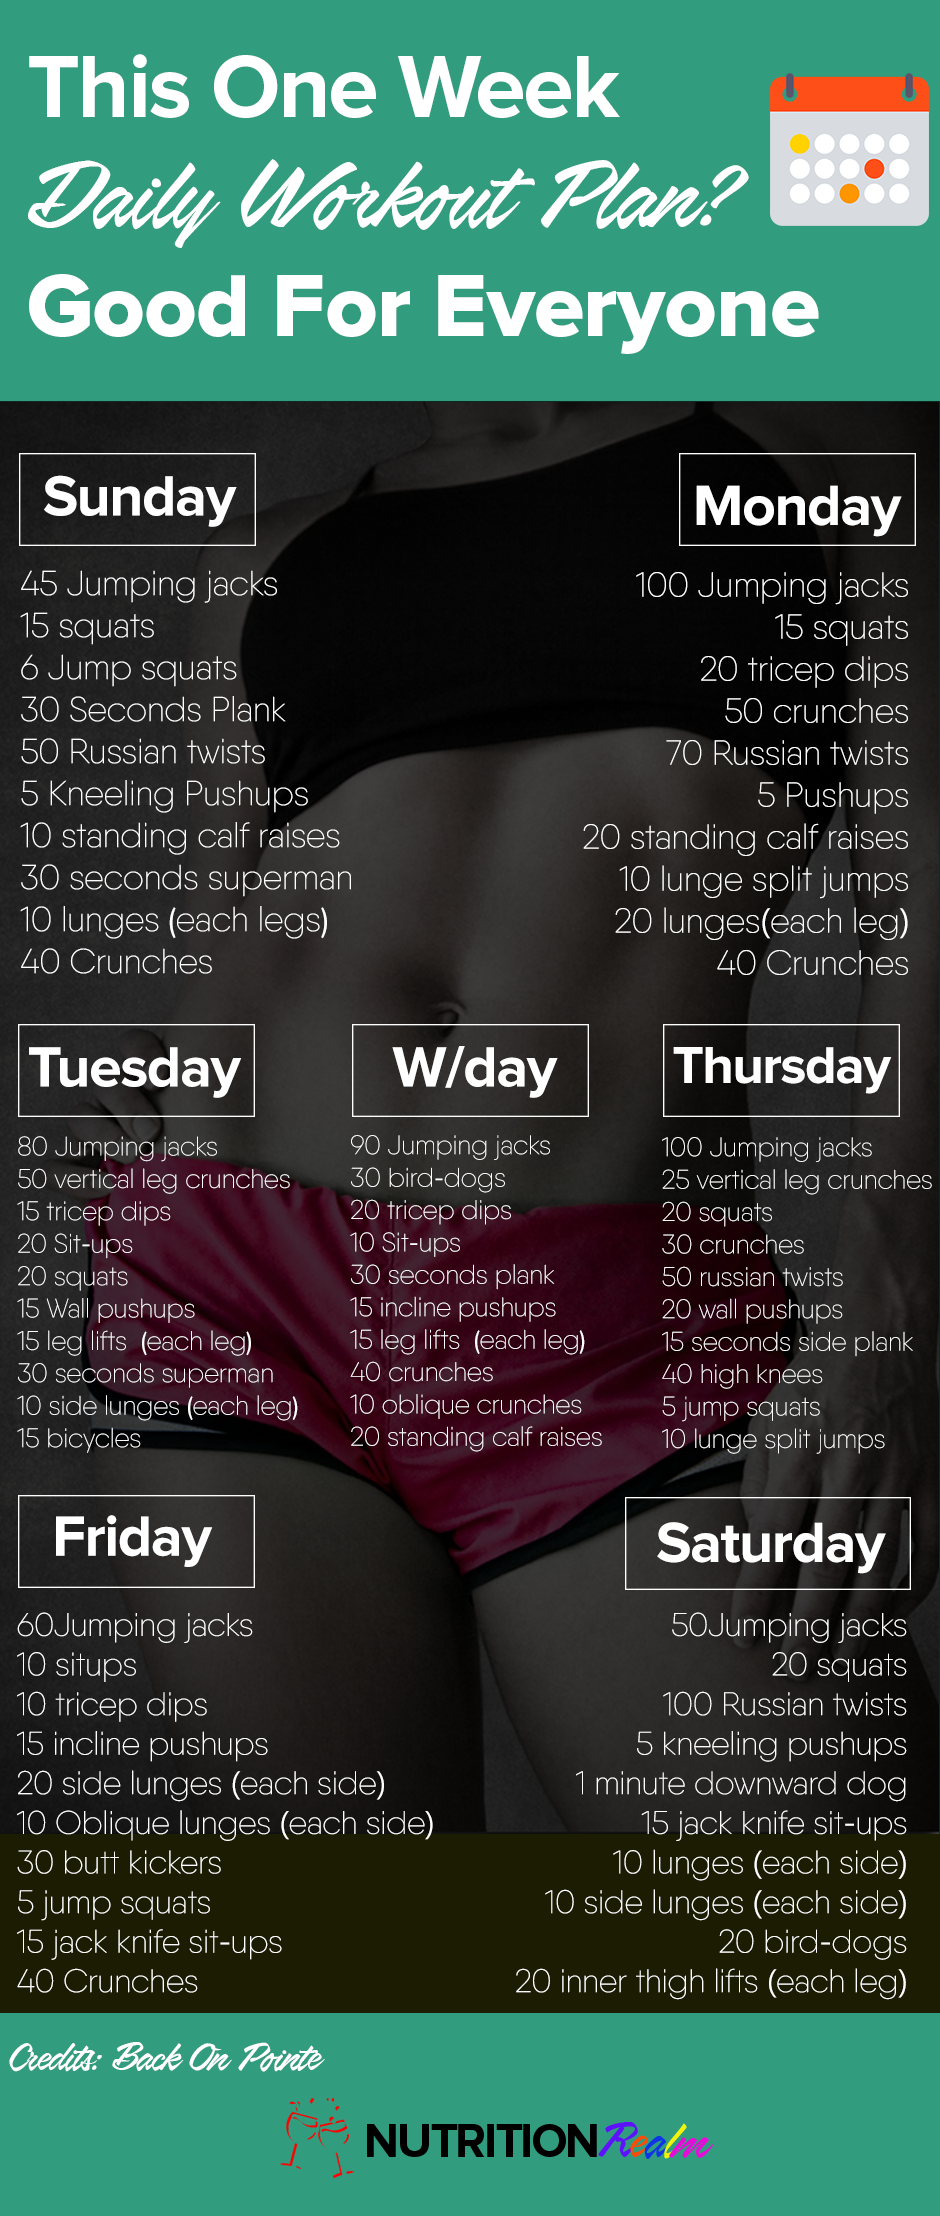 One Week Daily Workout Plan That Works For Anyone